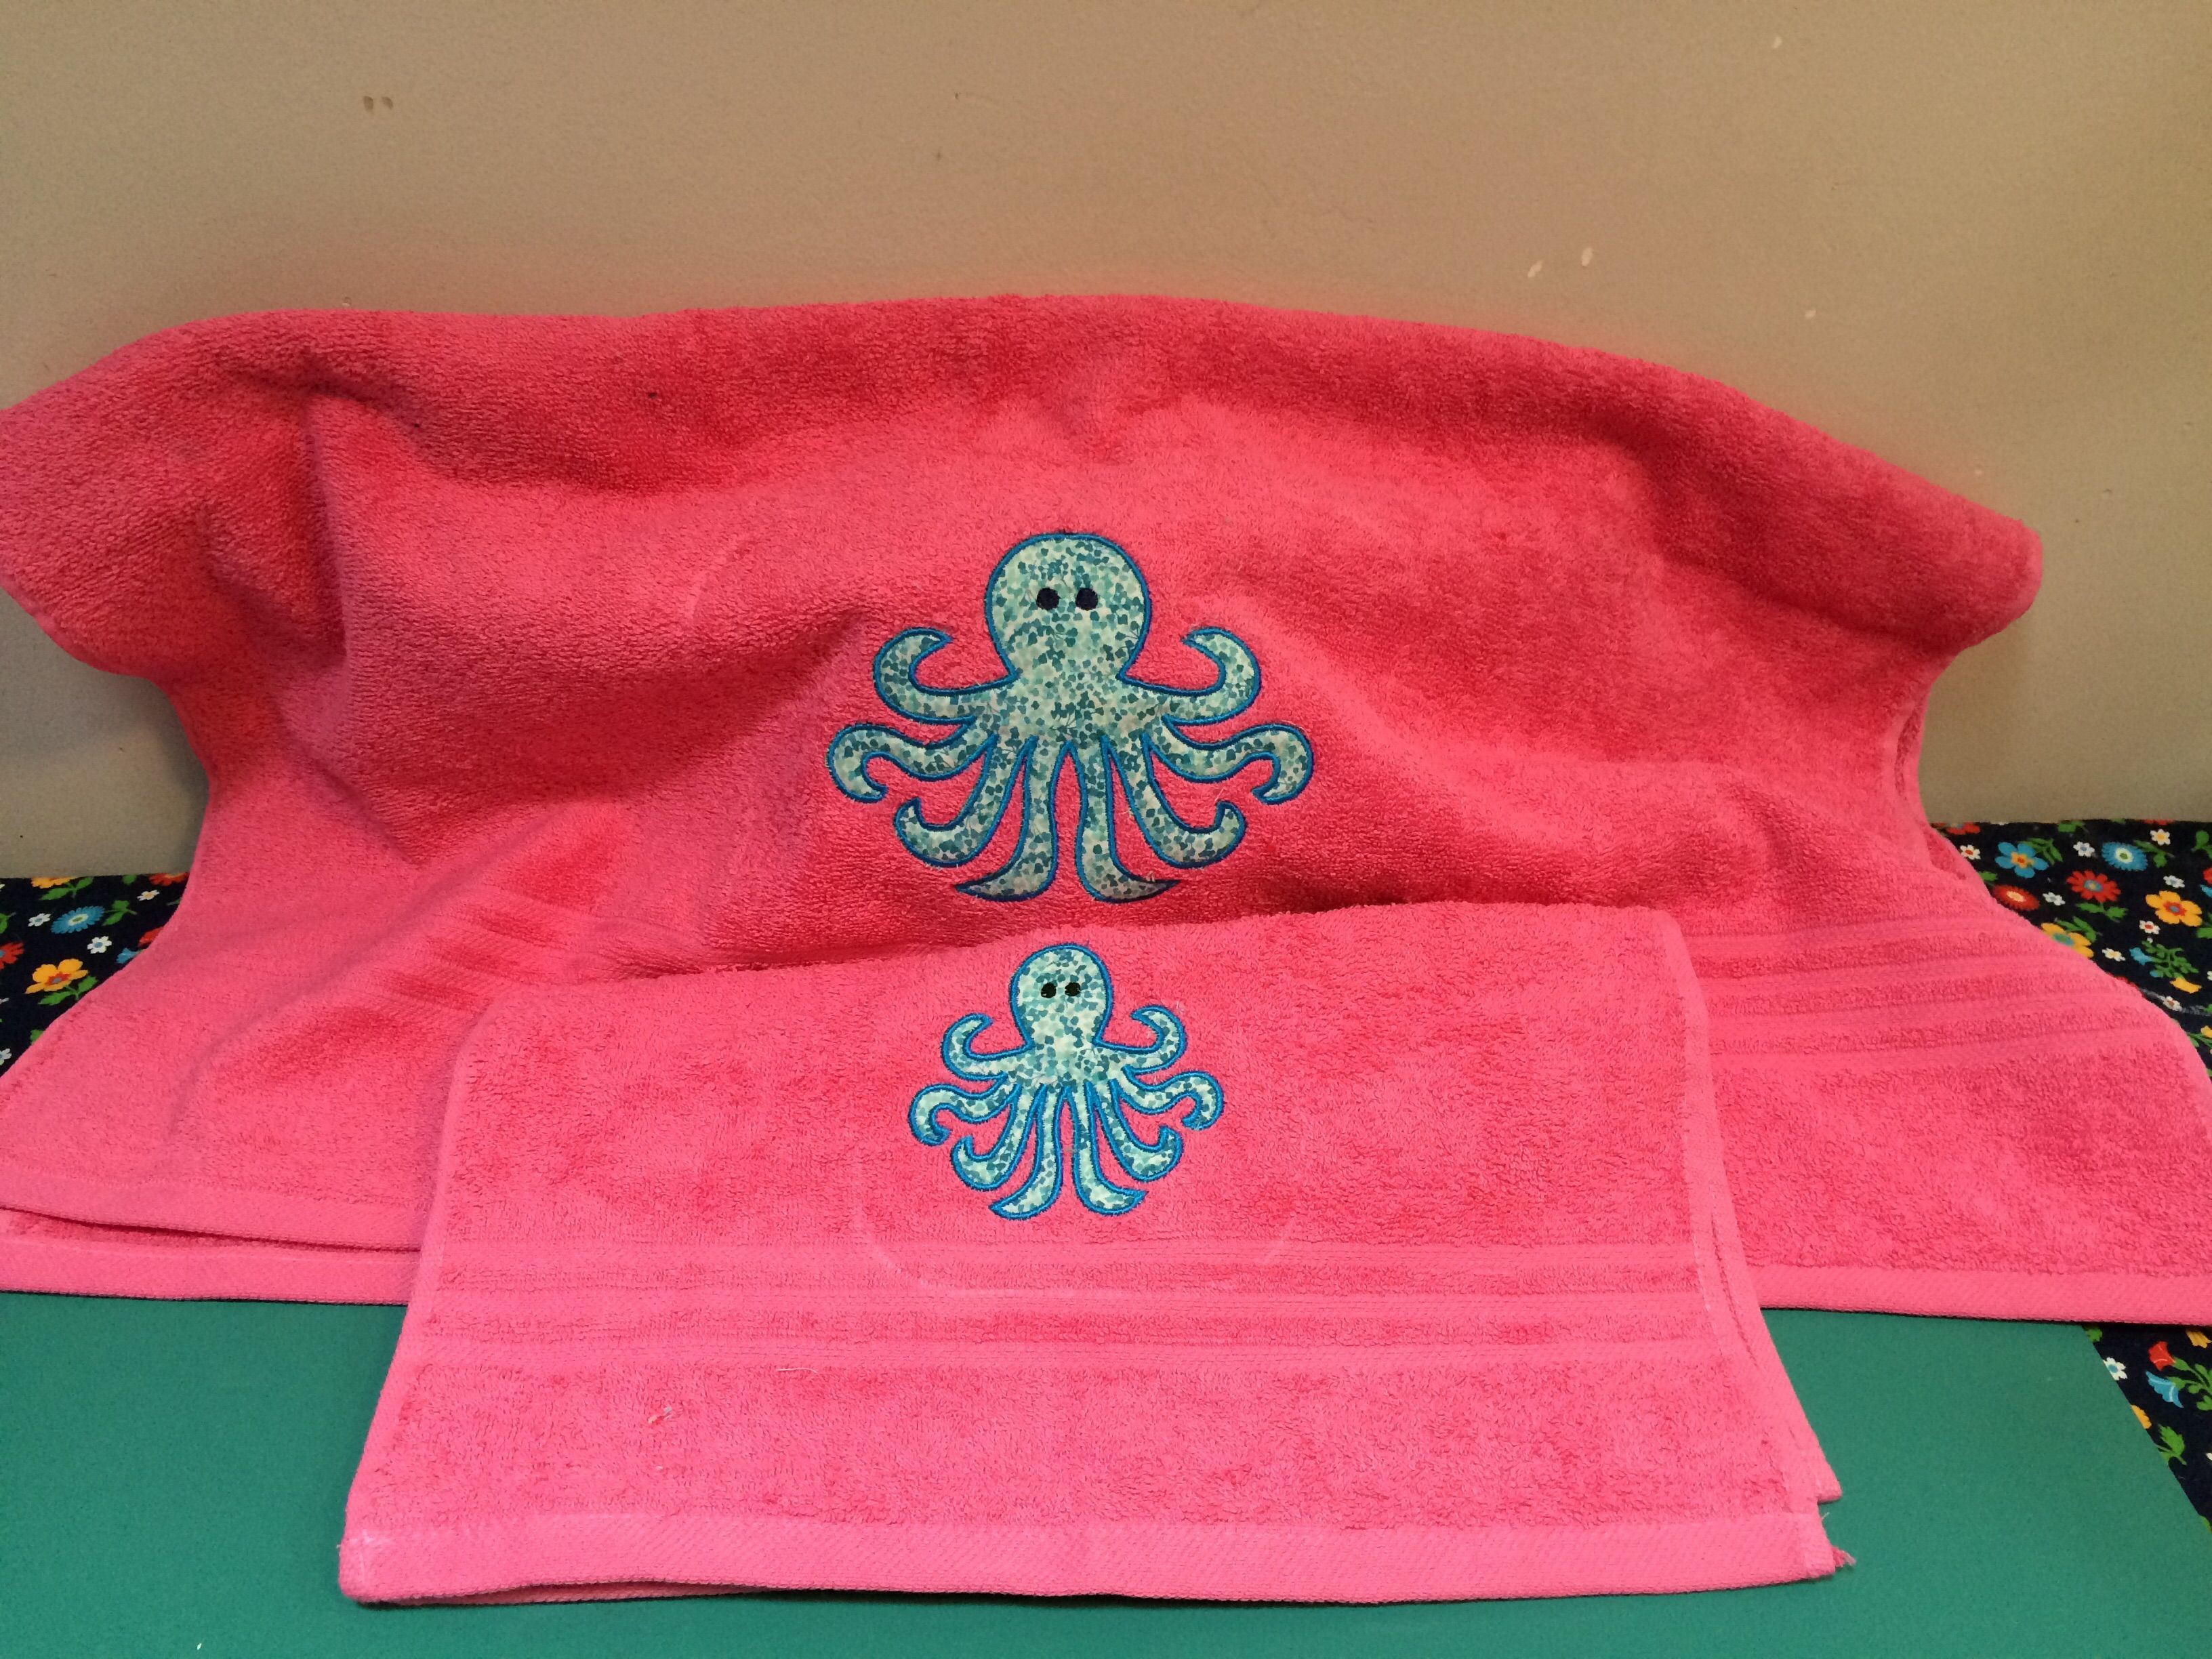 Octopus bath and hand towels on pink